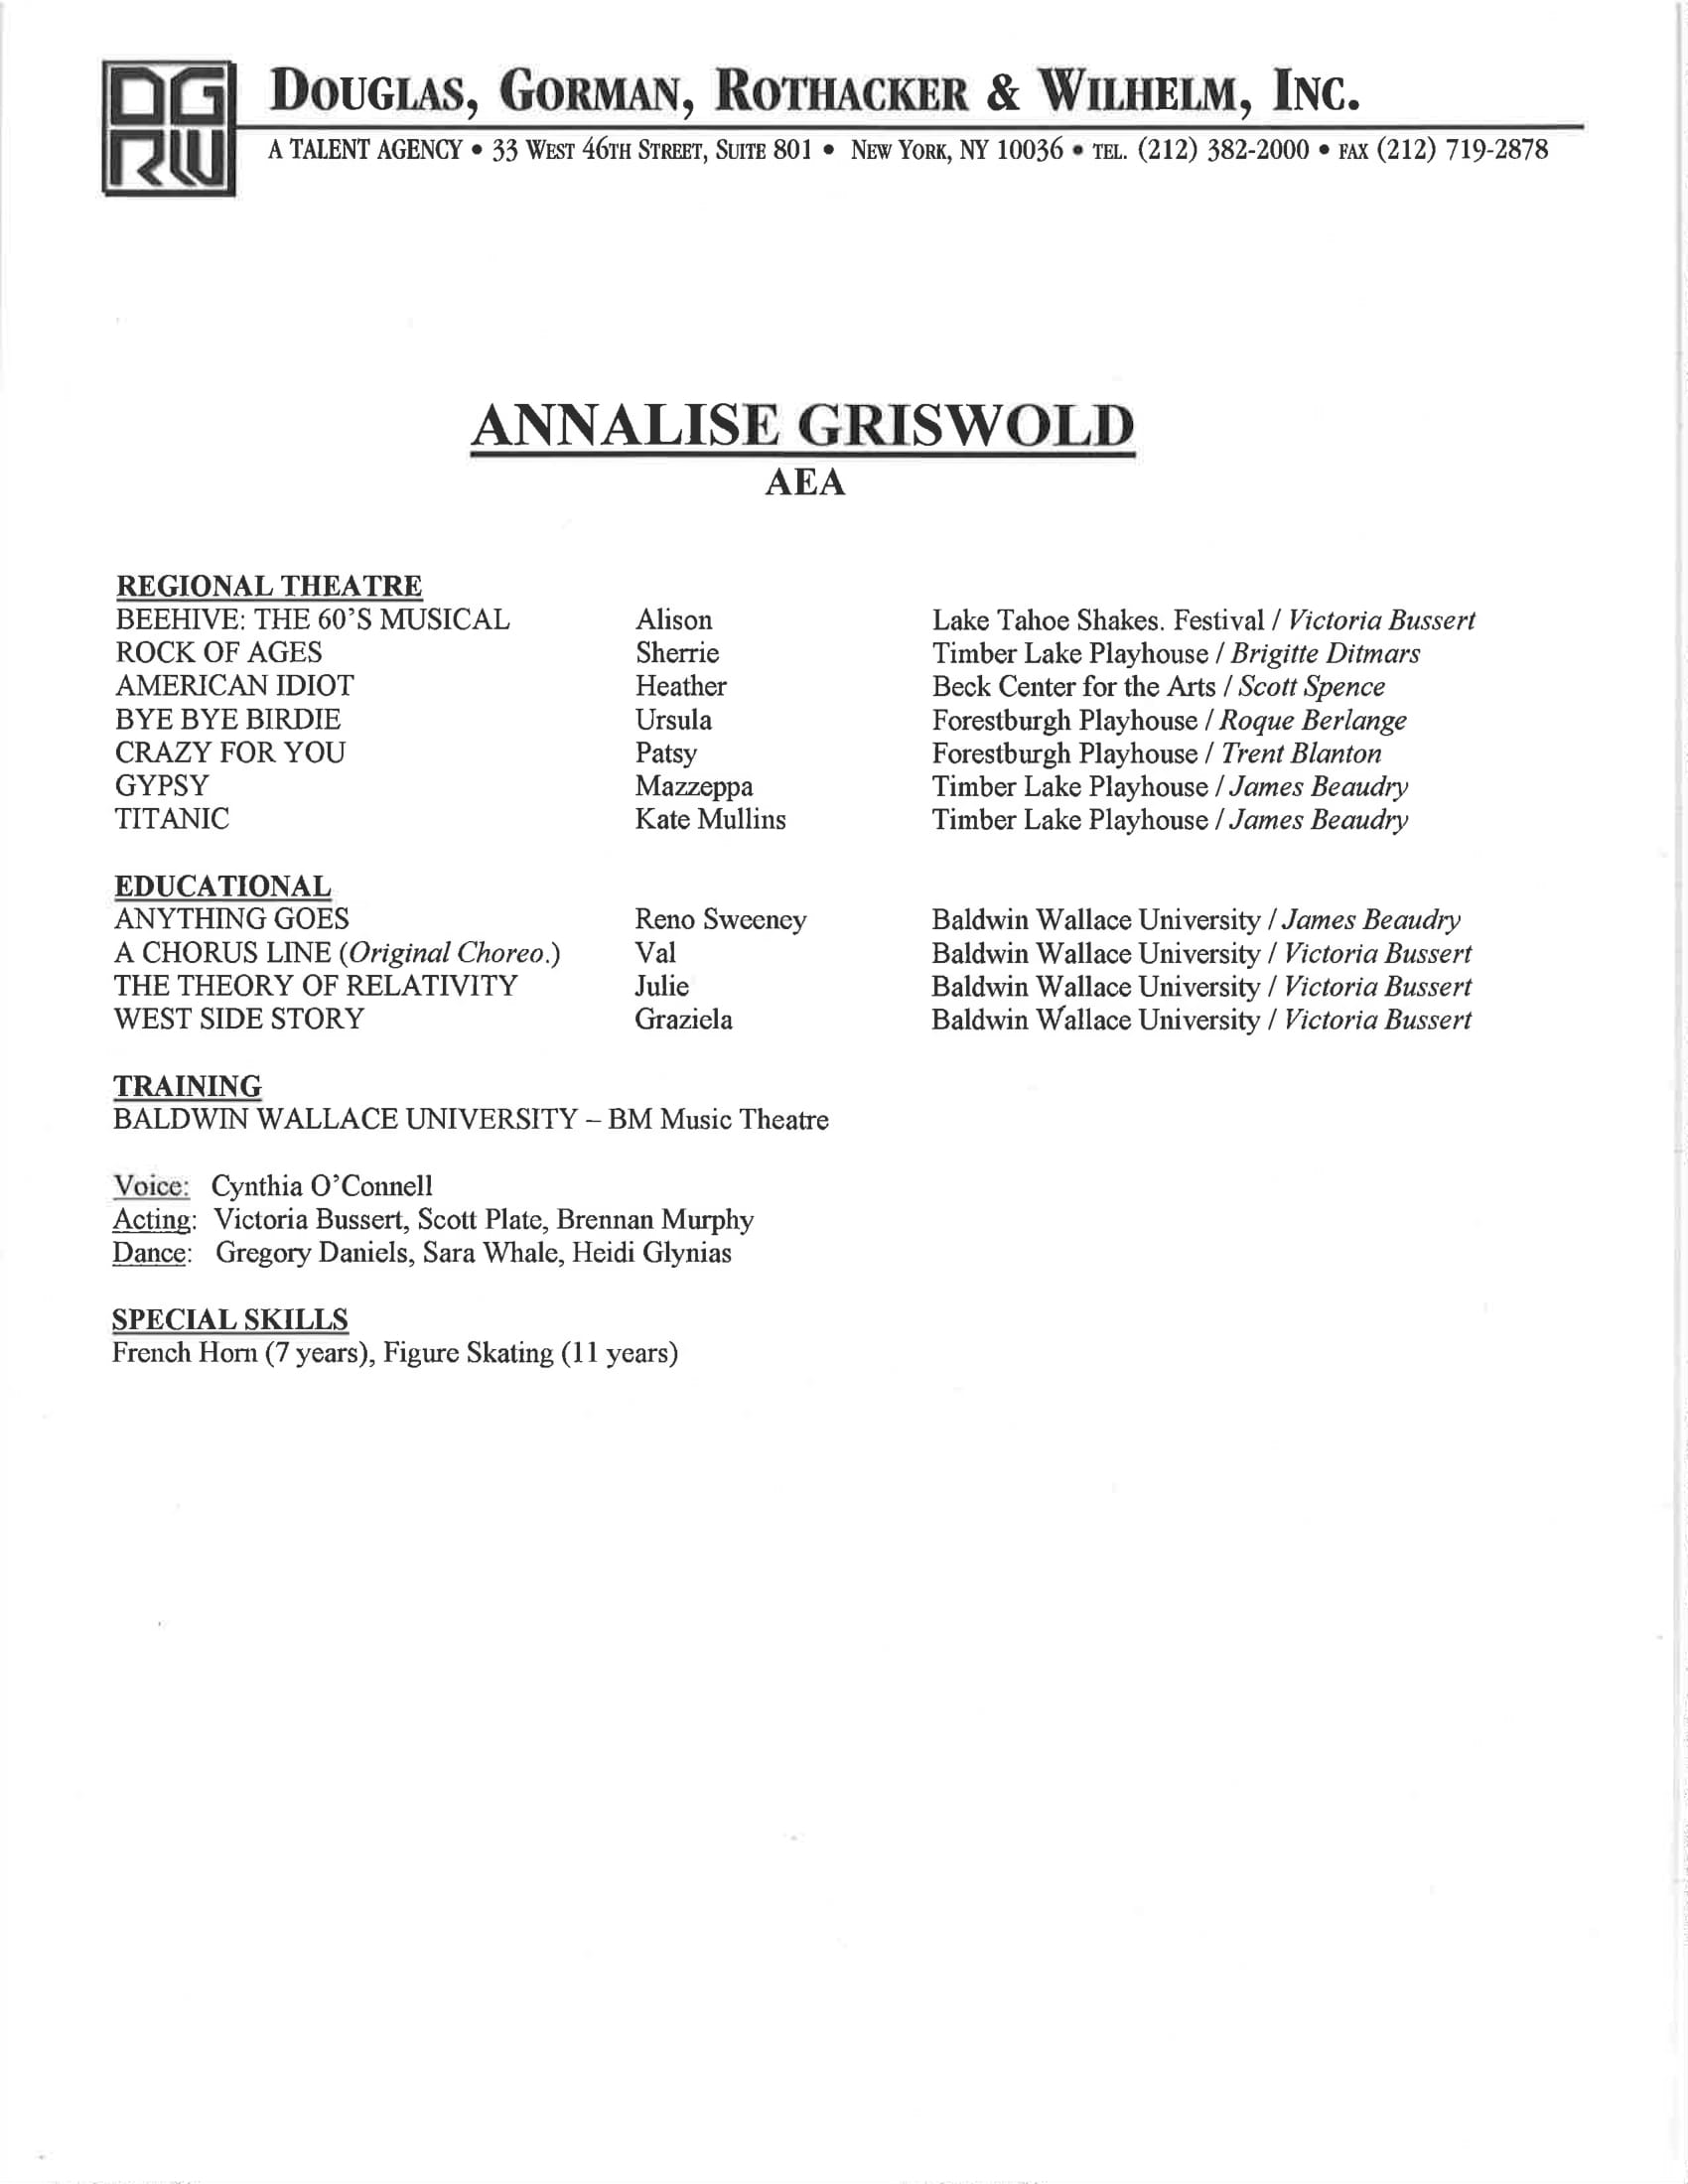 Resume Annalise Griswold